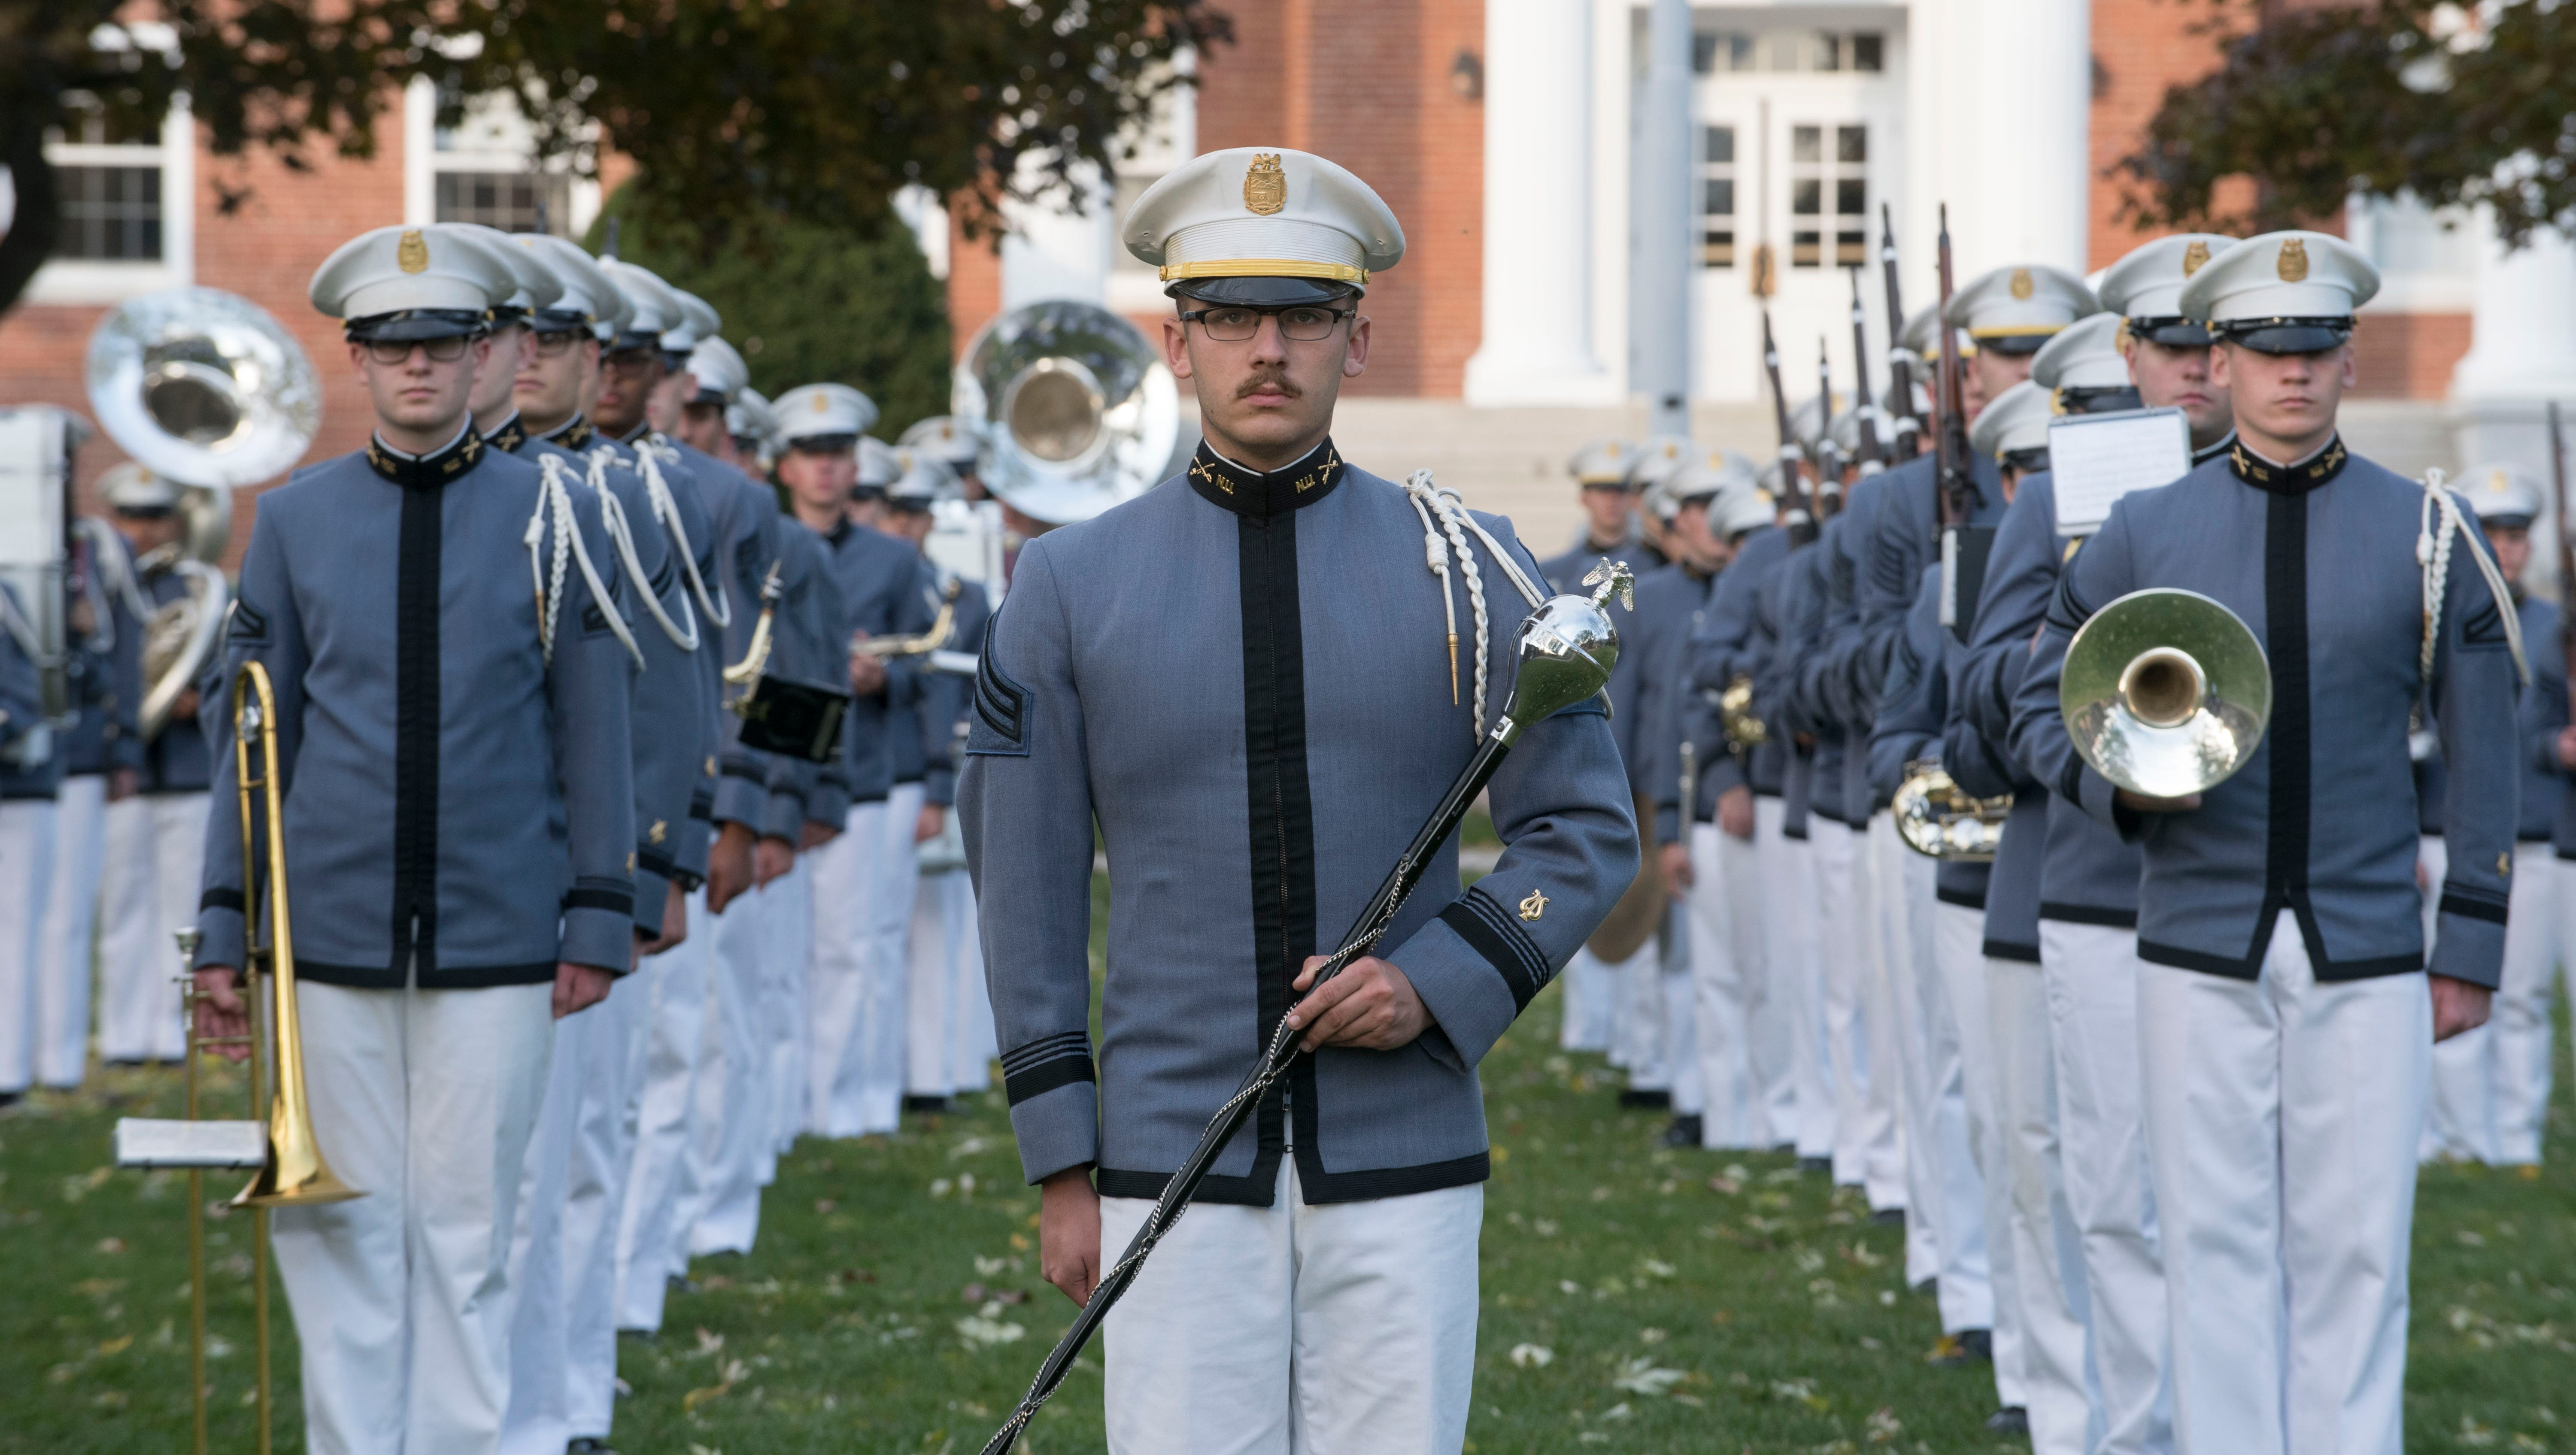 Norwich University Band To Perform For Trump